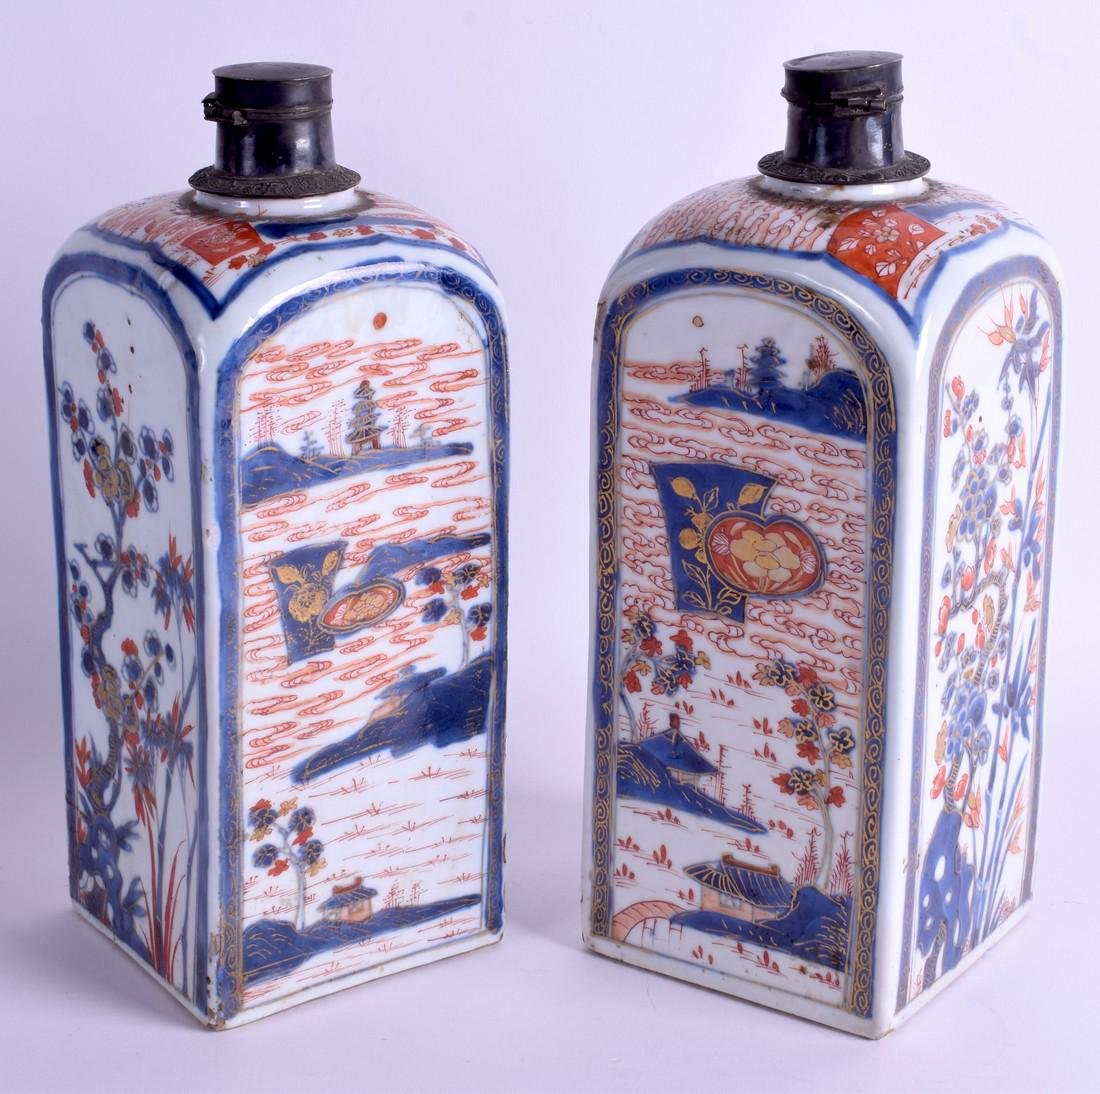 A PAIR OF EARLY 18TH CENTURY CHINESE IMARI PORCELAIN